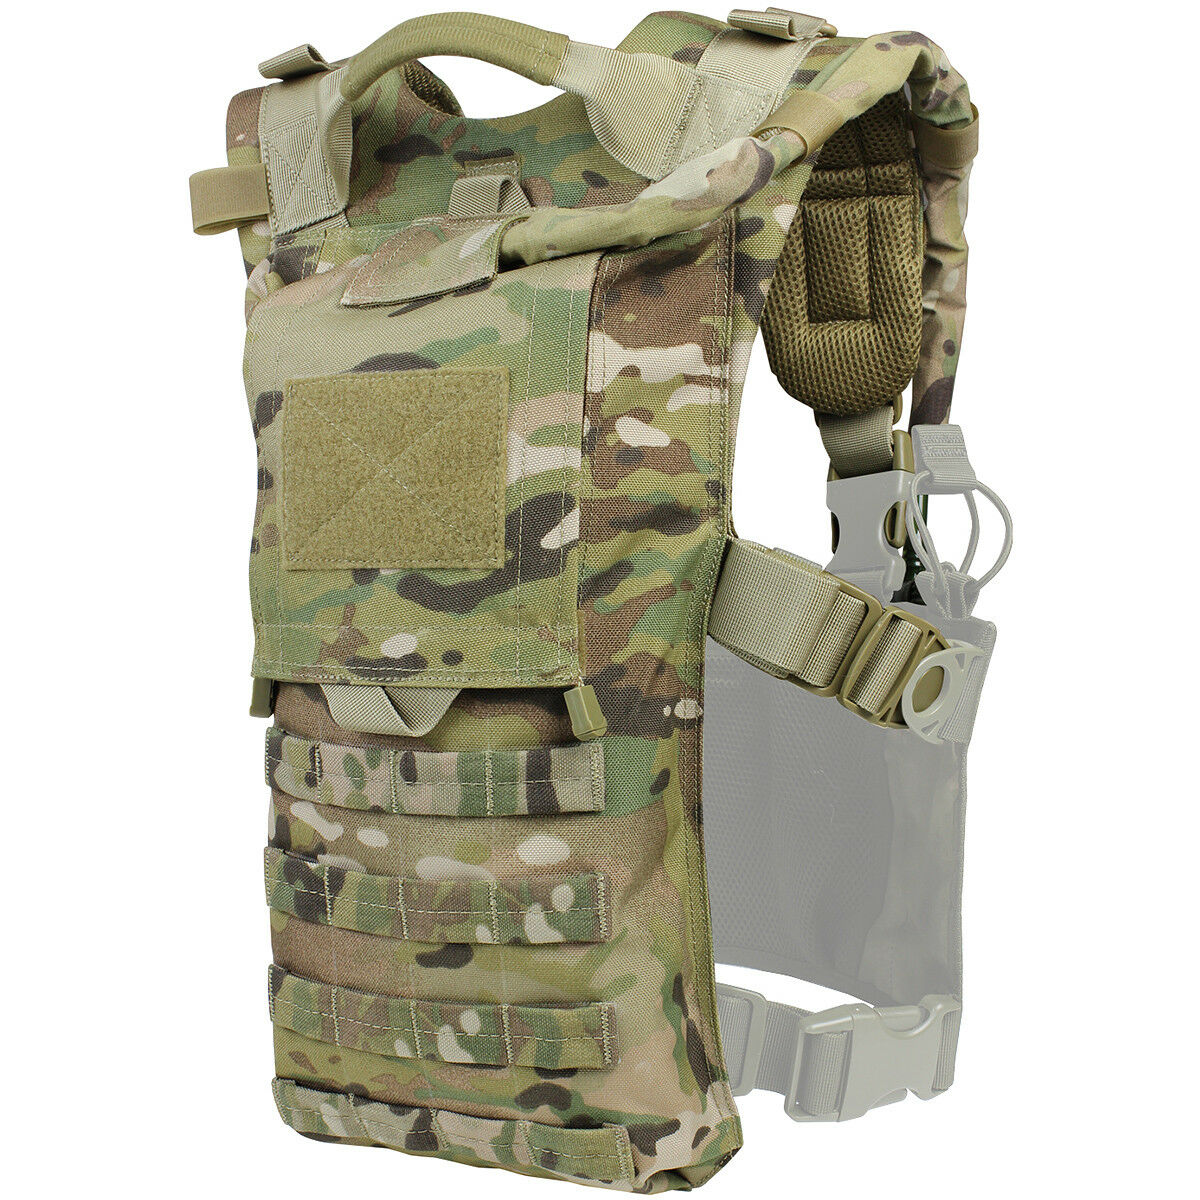 Condor Military Hydro Harness Chest Rig Hydration Add-On Water Carrier  Multicam  unique shape